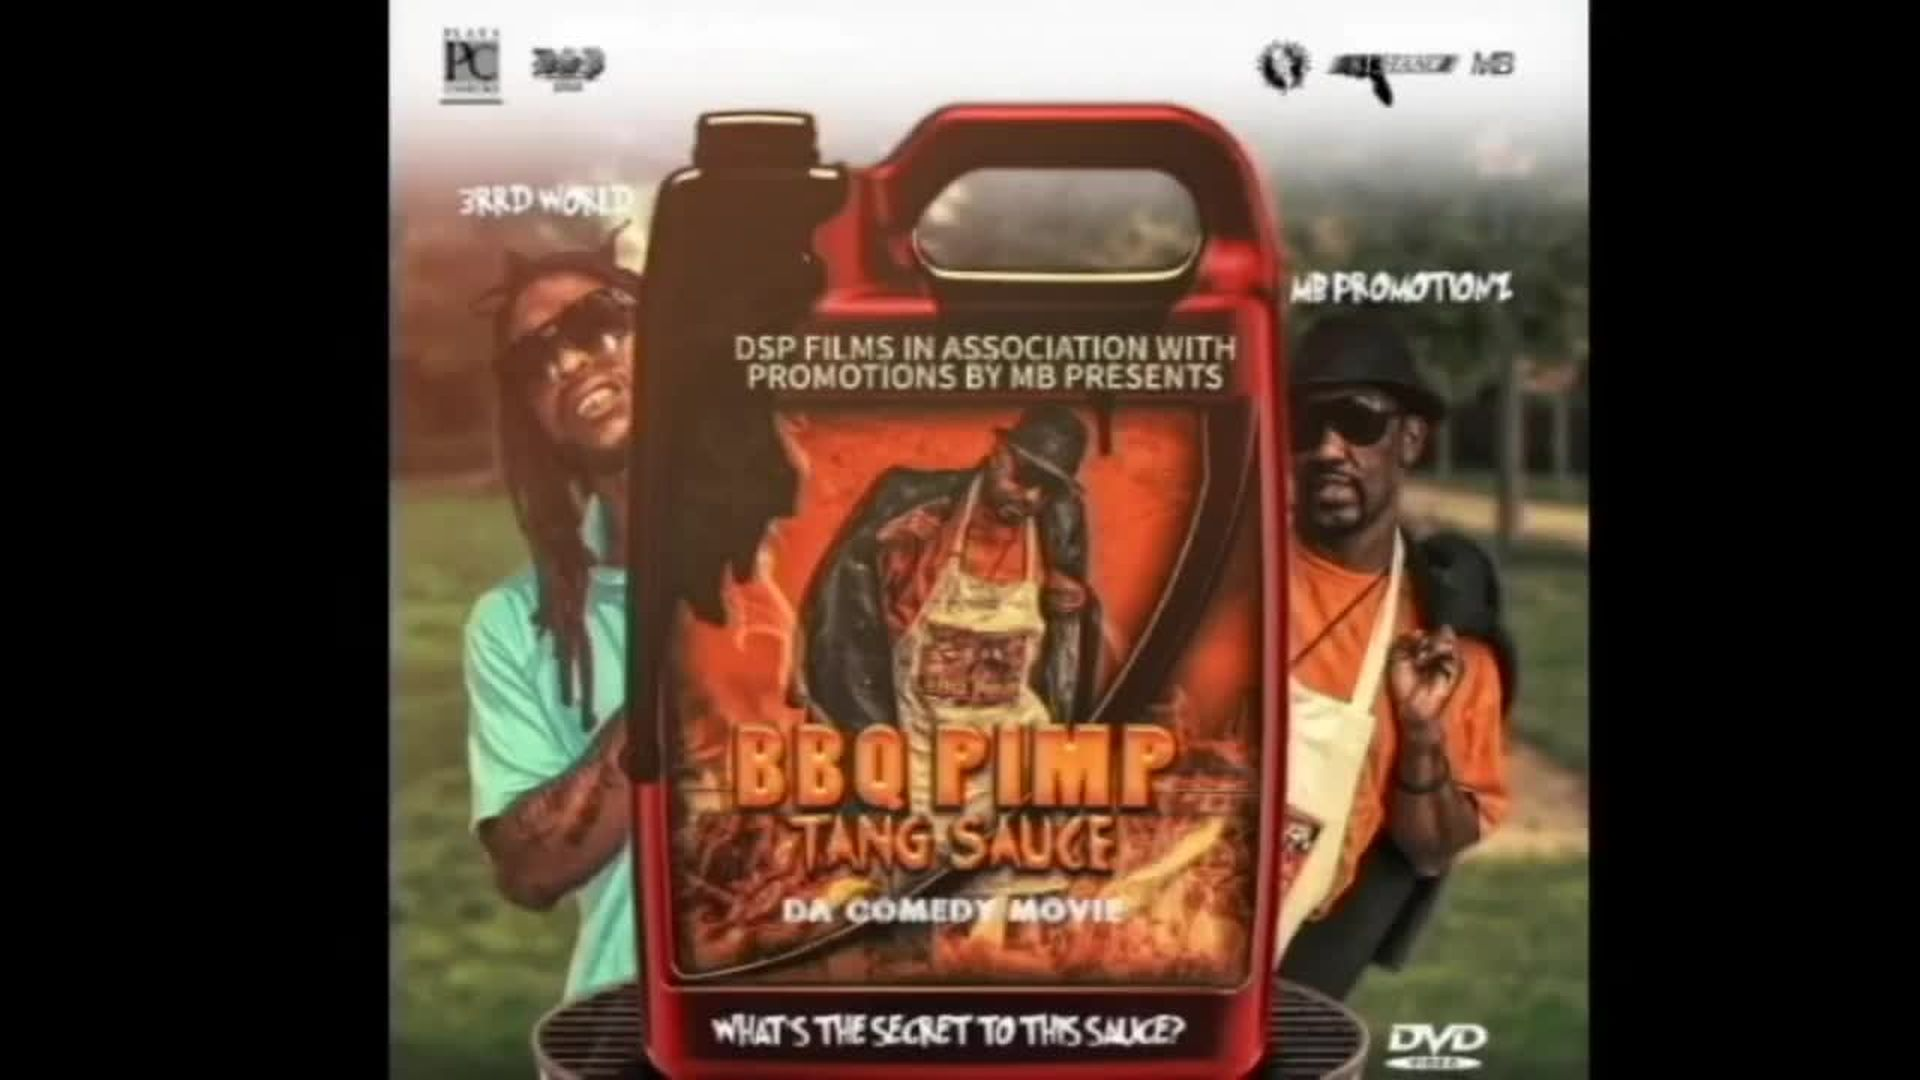 Barbeque Pimp Da Comedy Movie